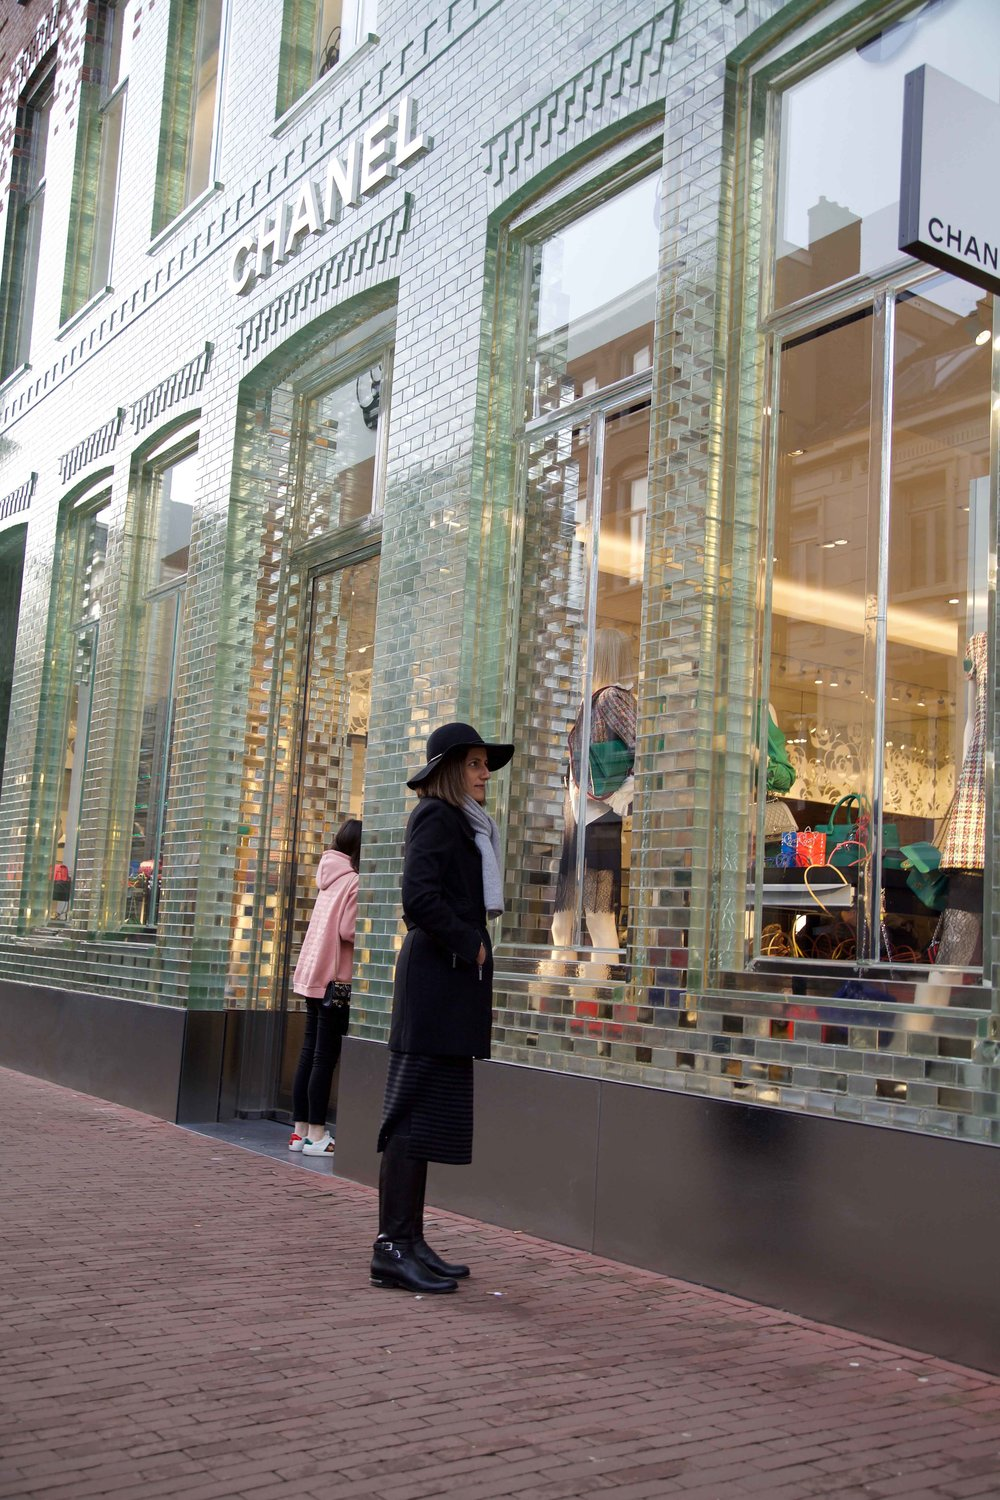 Chanel, Luxury shopping, PC Hooftstraat, Amsterdam. Photo: Fabio Ricci. Image©thingstodot.com